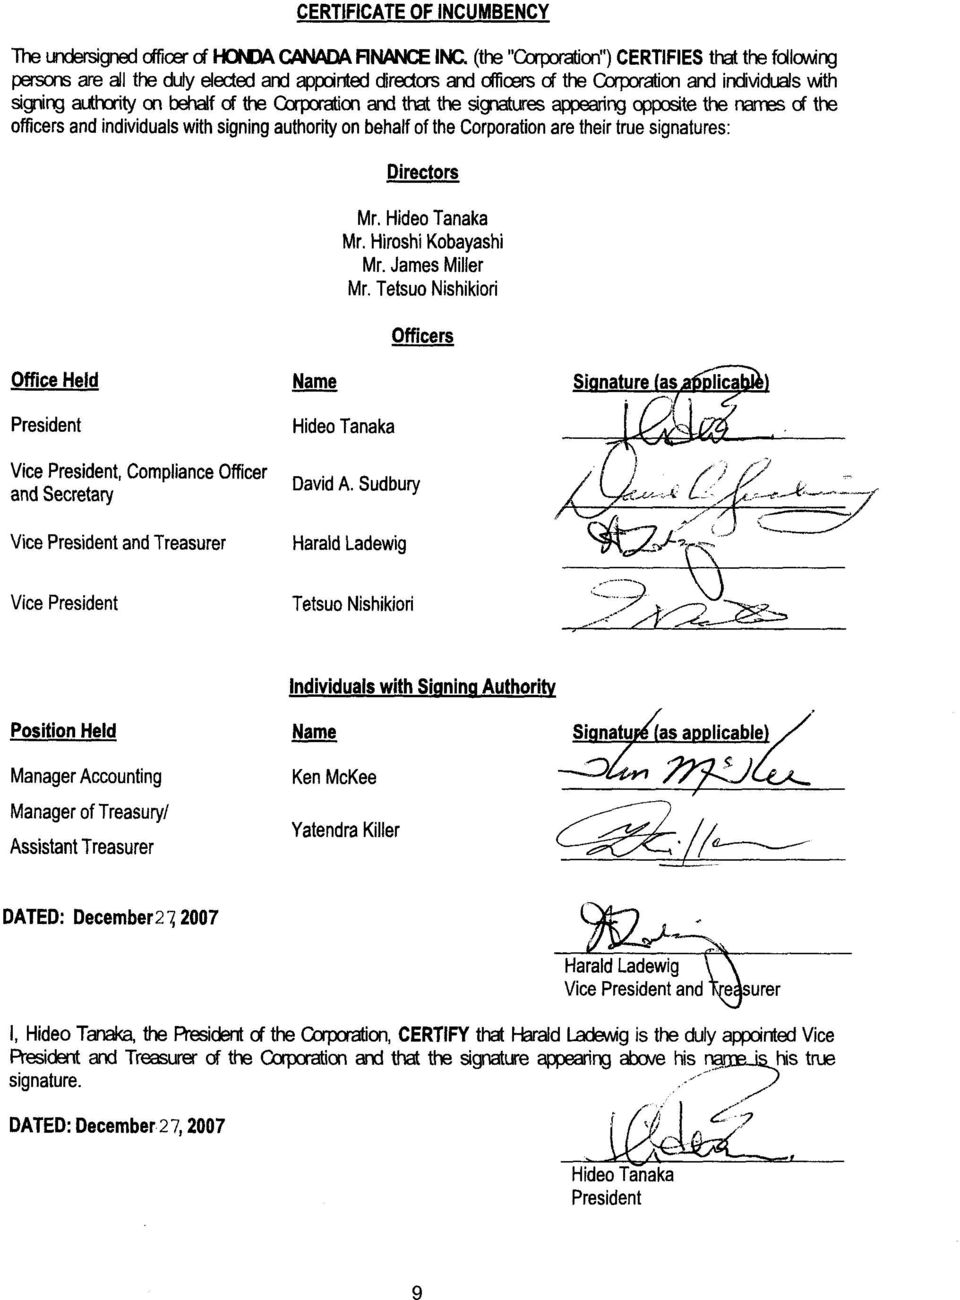 Qrporation and that the signatures appearing opposite the names of the officers and individuals with signing authority on behalf of the Corporation are their true signatures: Directors Mr.